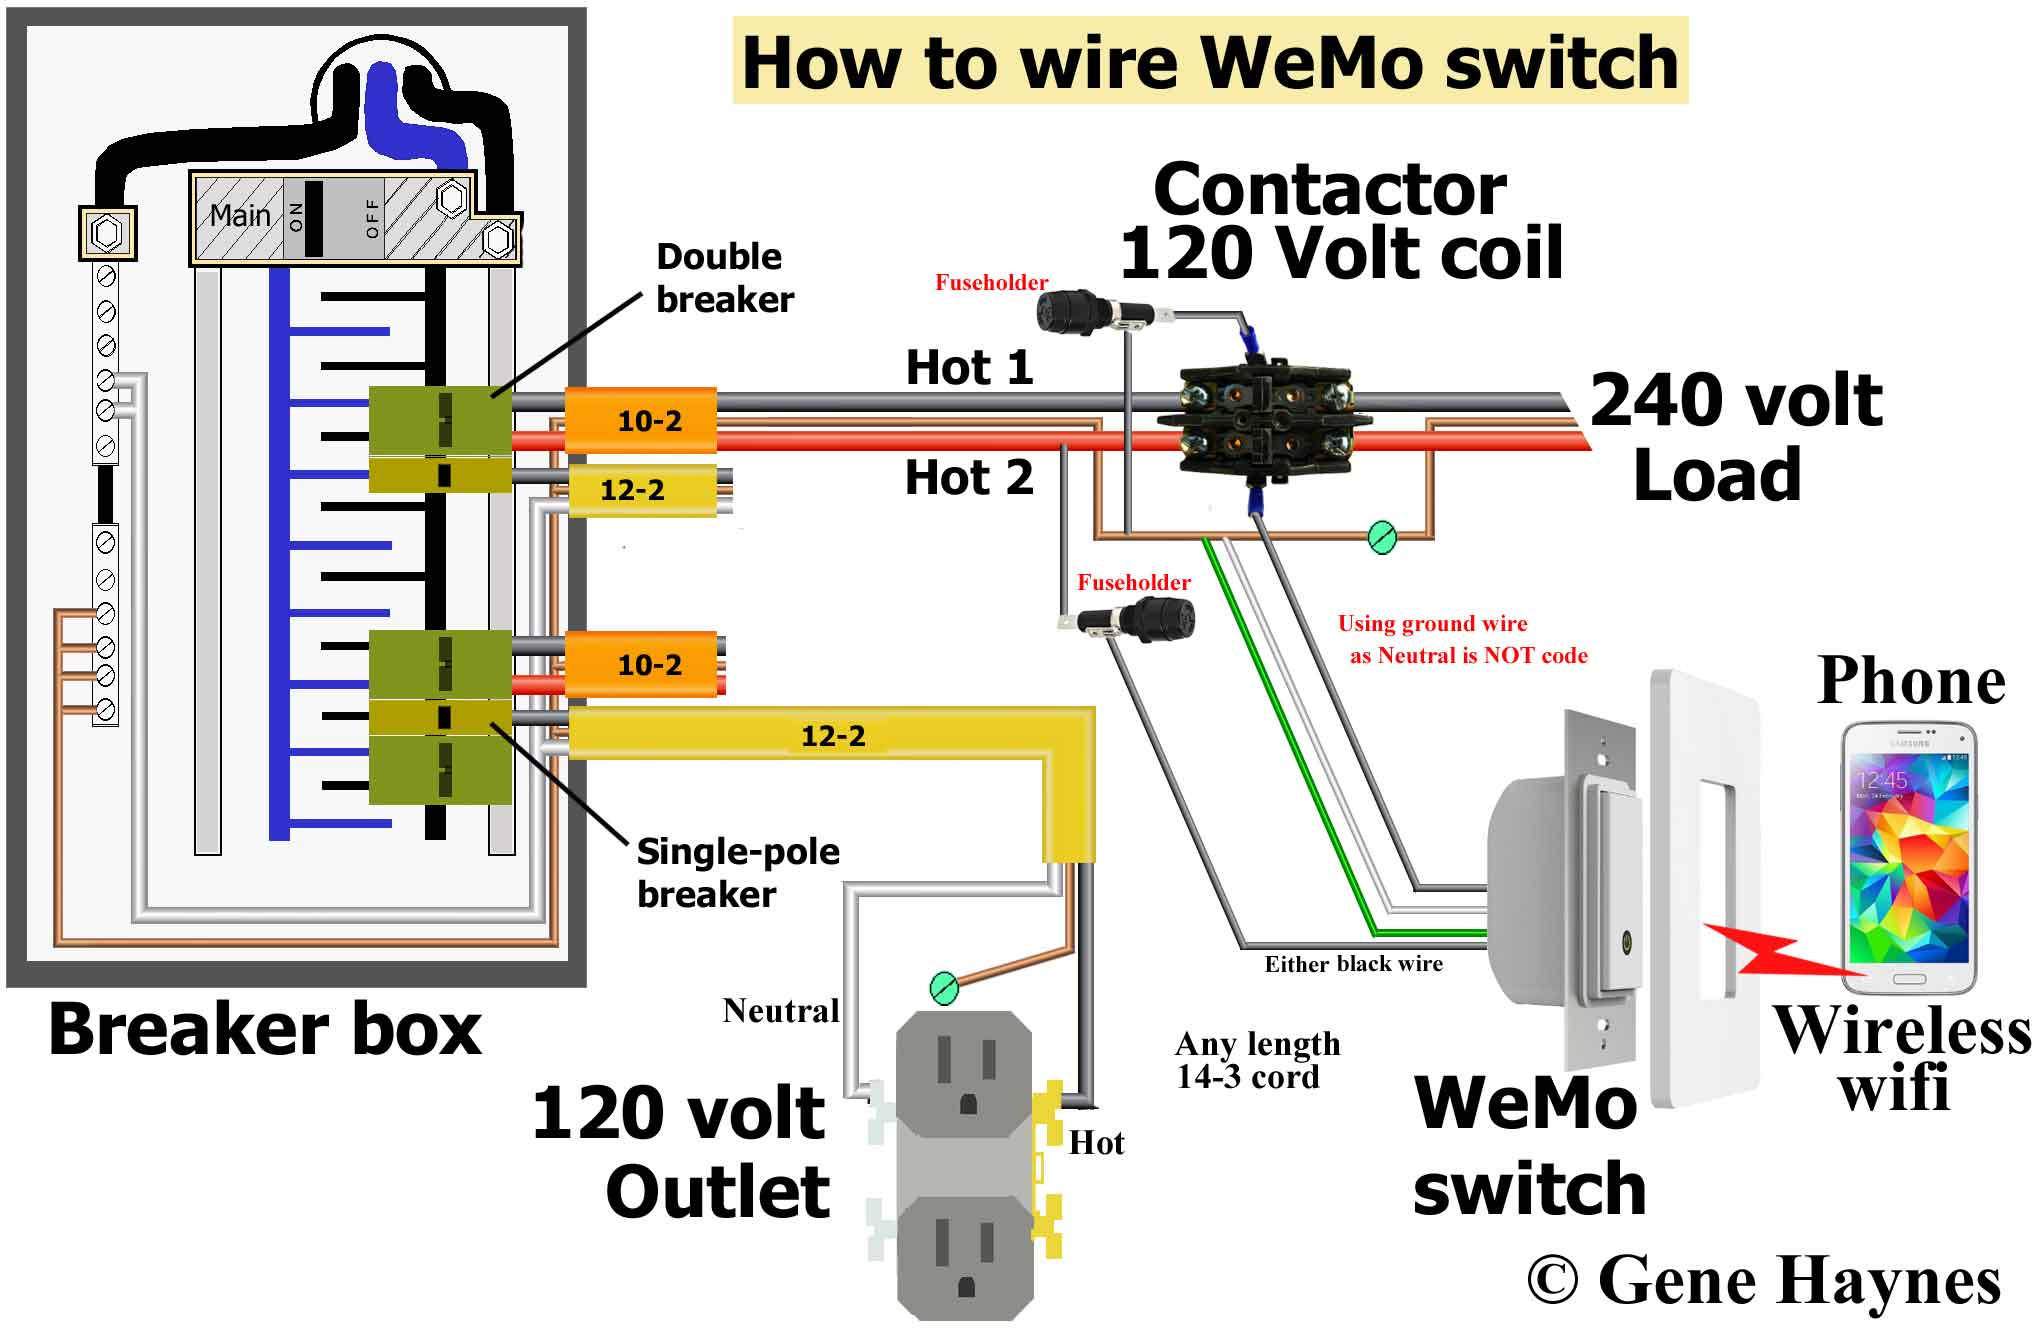 3 Wire 240 Volt Range Wiring Diagram Full Hd Version Wiring Diagram Verndiagram Regal Pizza Traiteur Fr